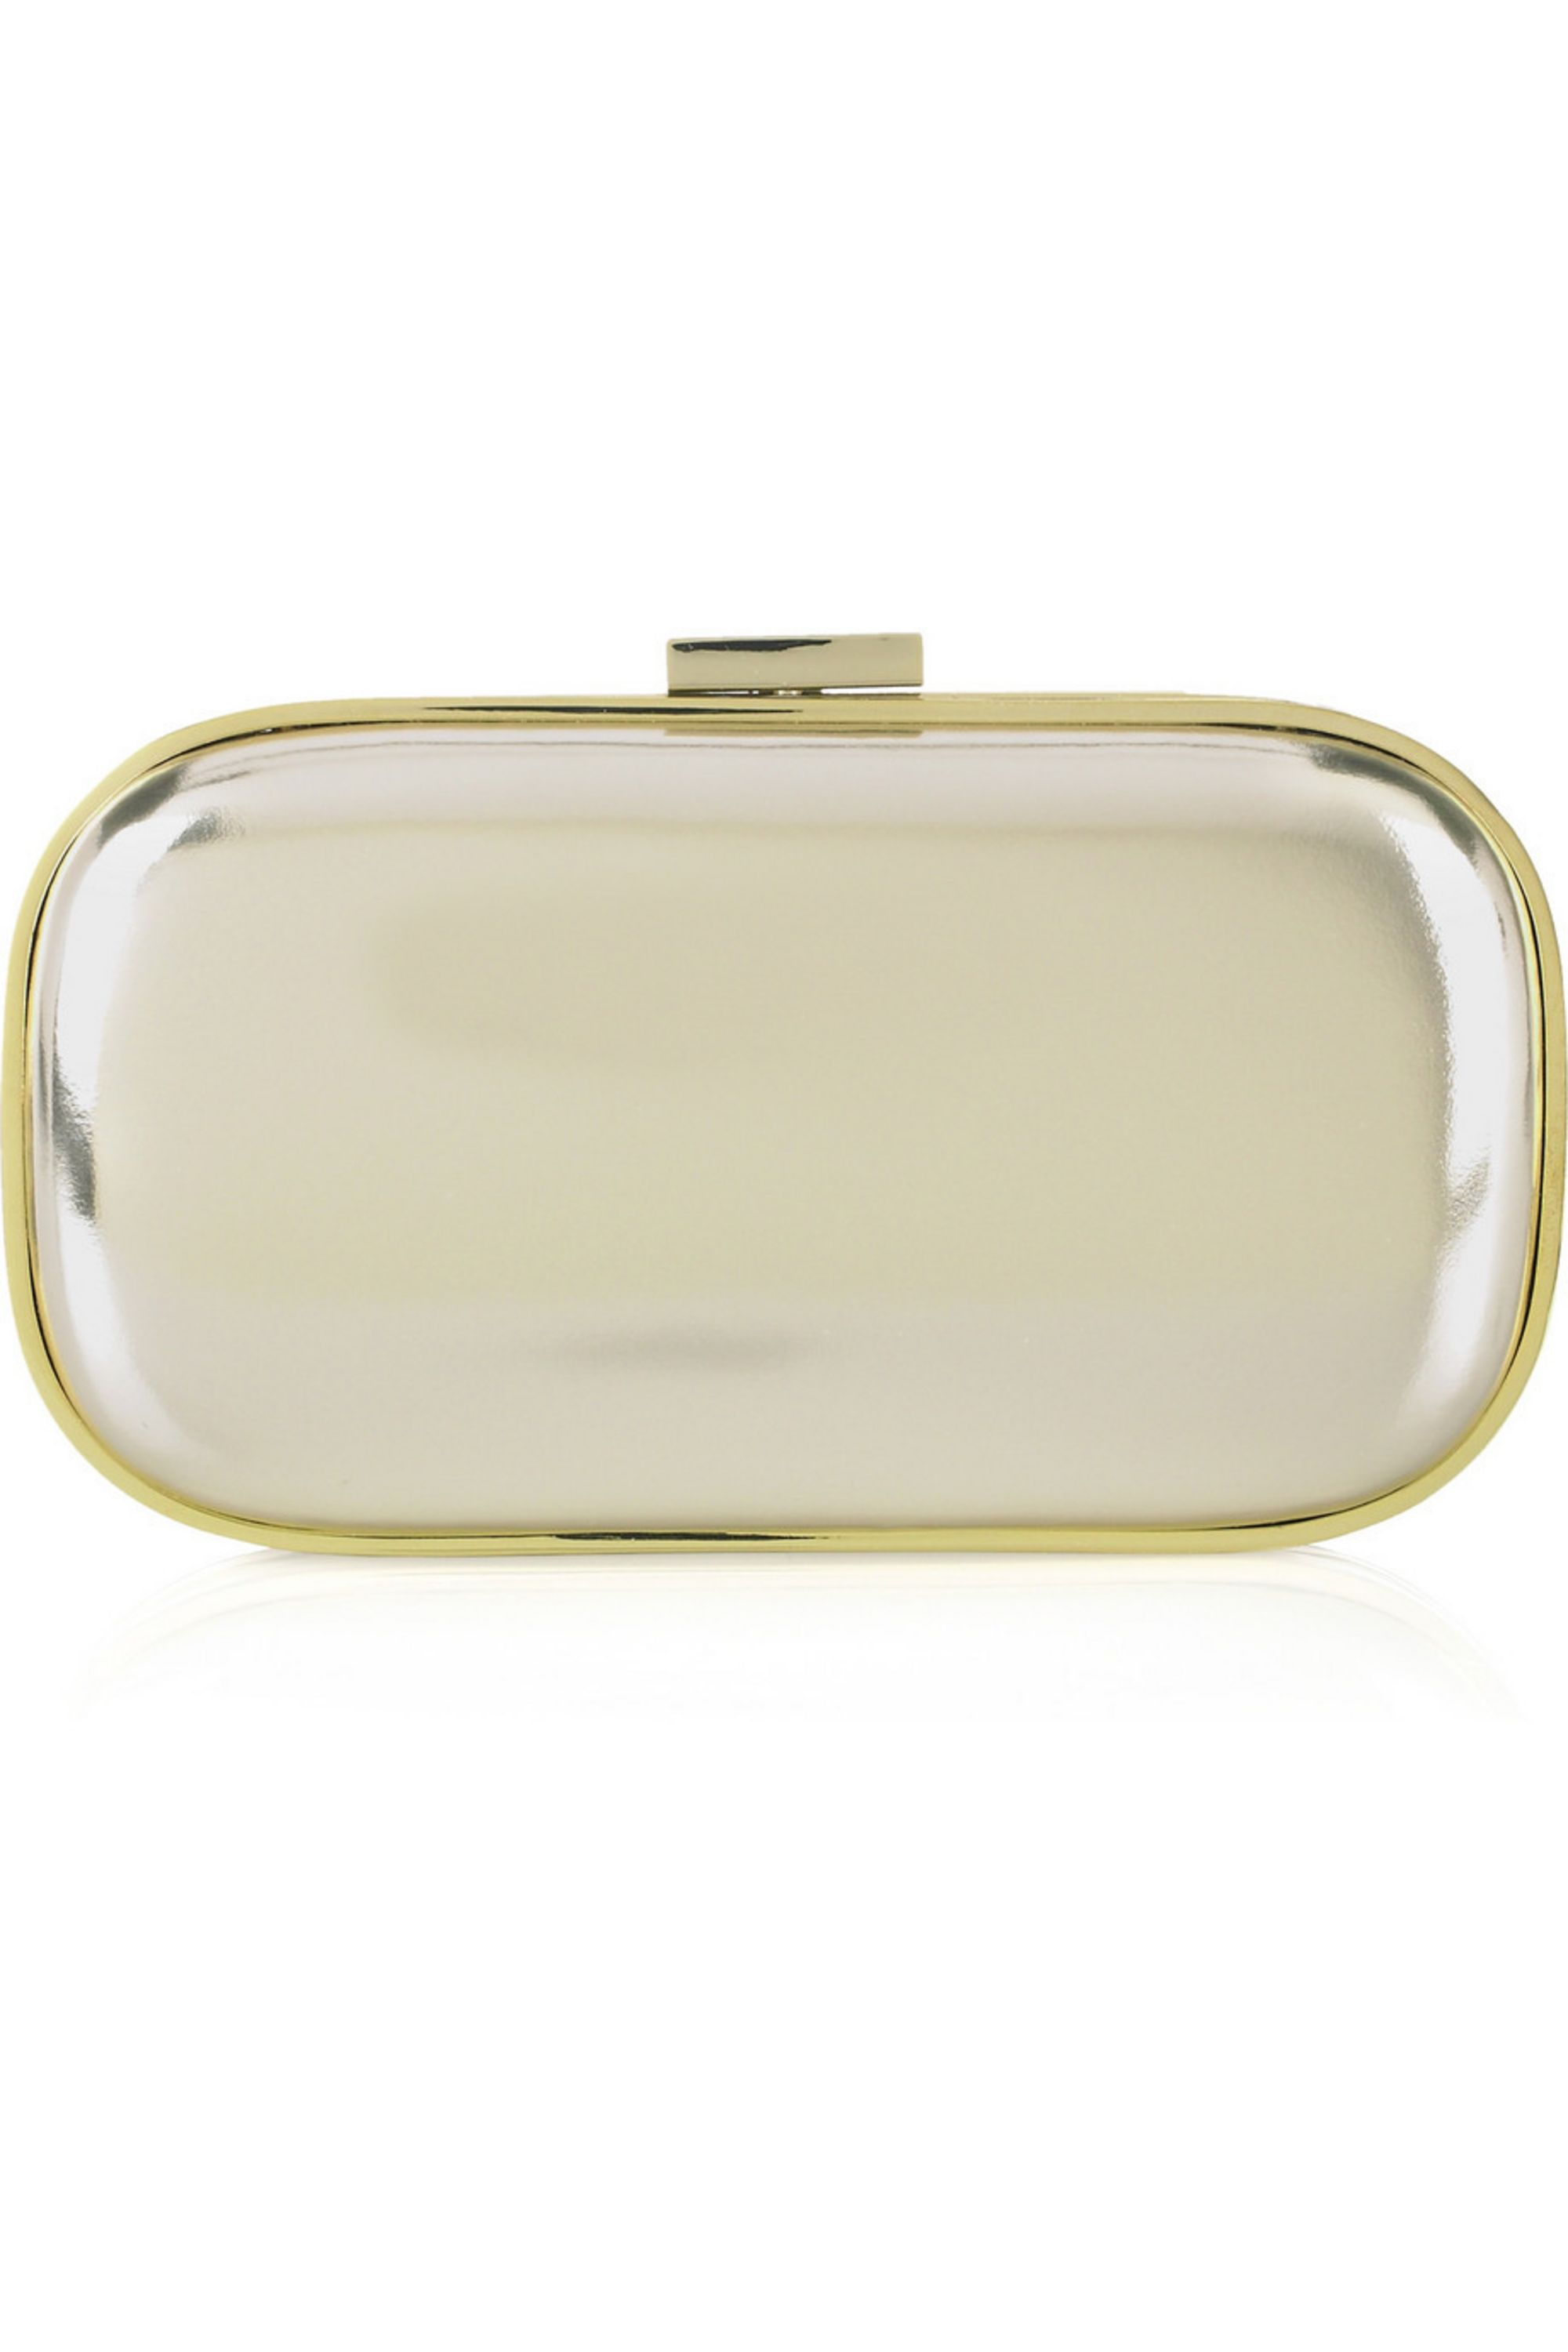 Anya Hindmarch Marano mirror-effect leather clutch